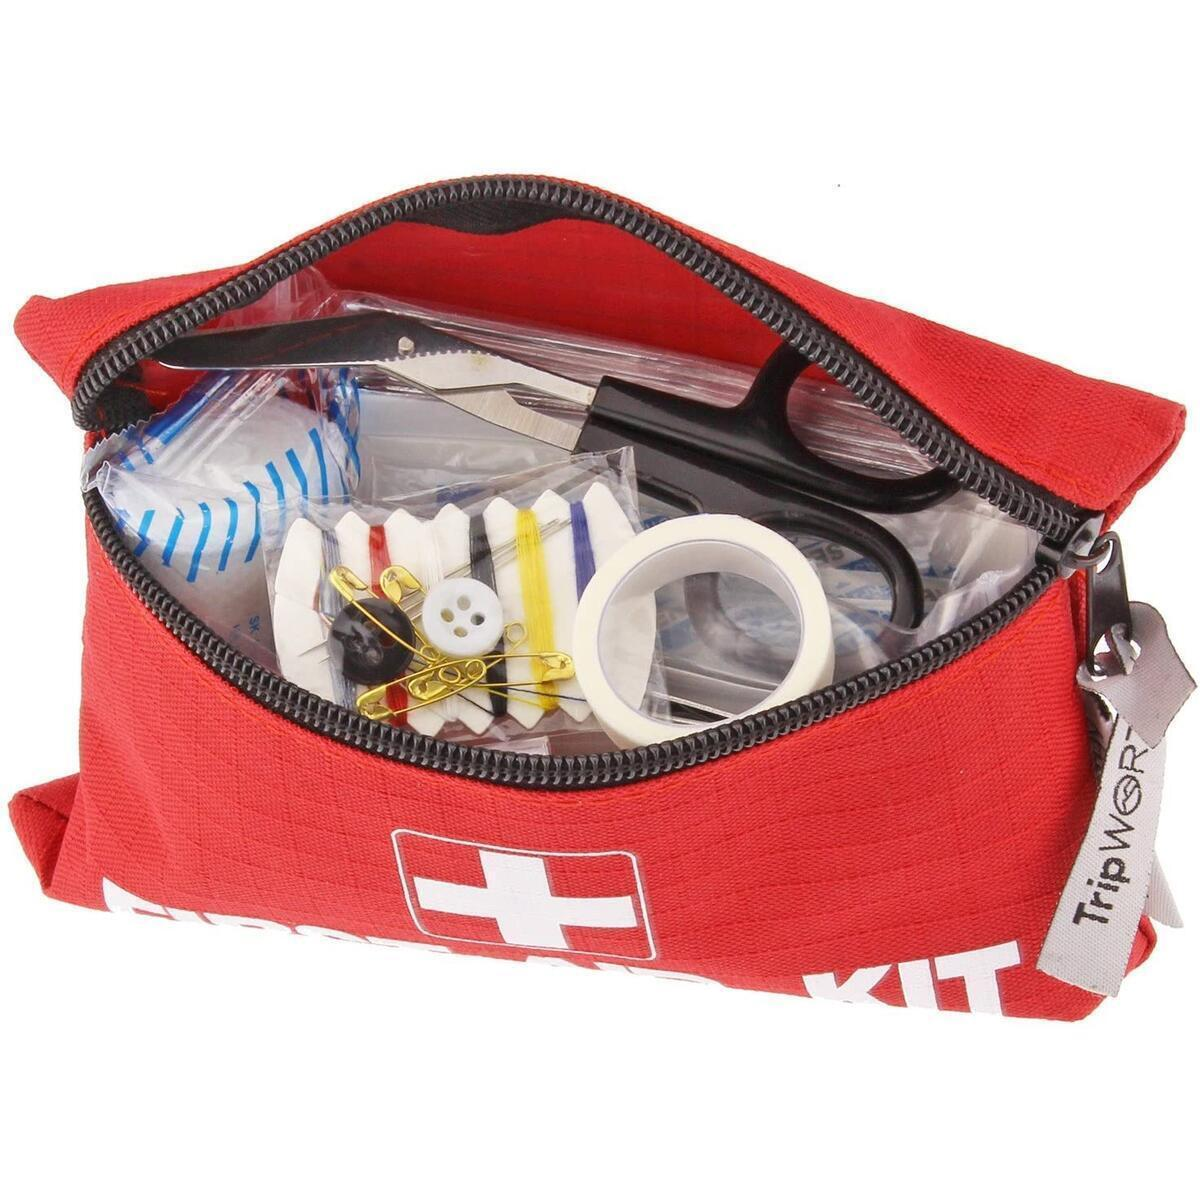 Travel Size First Aid Kit: 100 Piece Small First Aid Travel Bag Compact Lightweight & Portable Mini 1st Aid Box | Car Camping Backpacking Hiking School Office & Survival First Aid Supplies